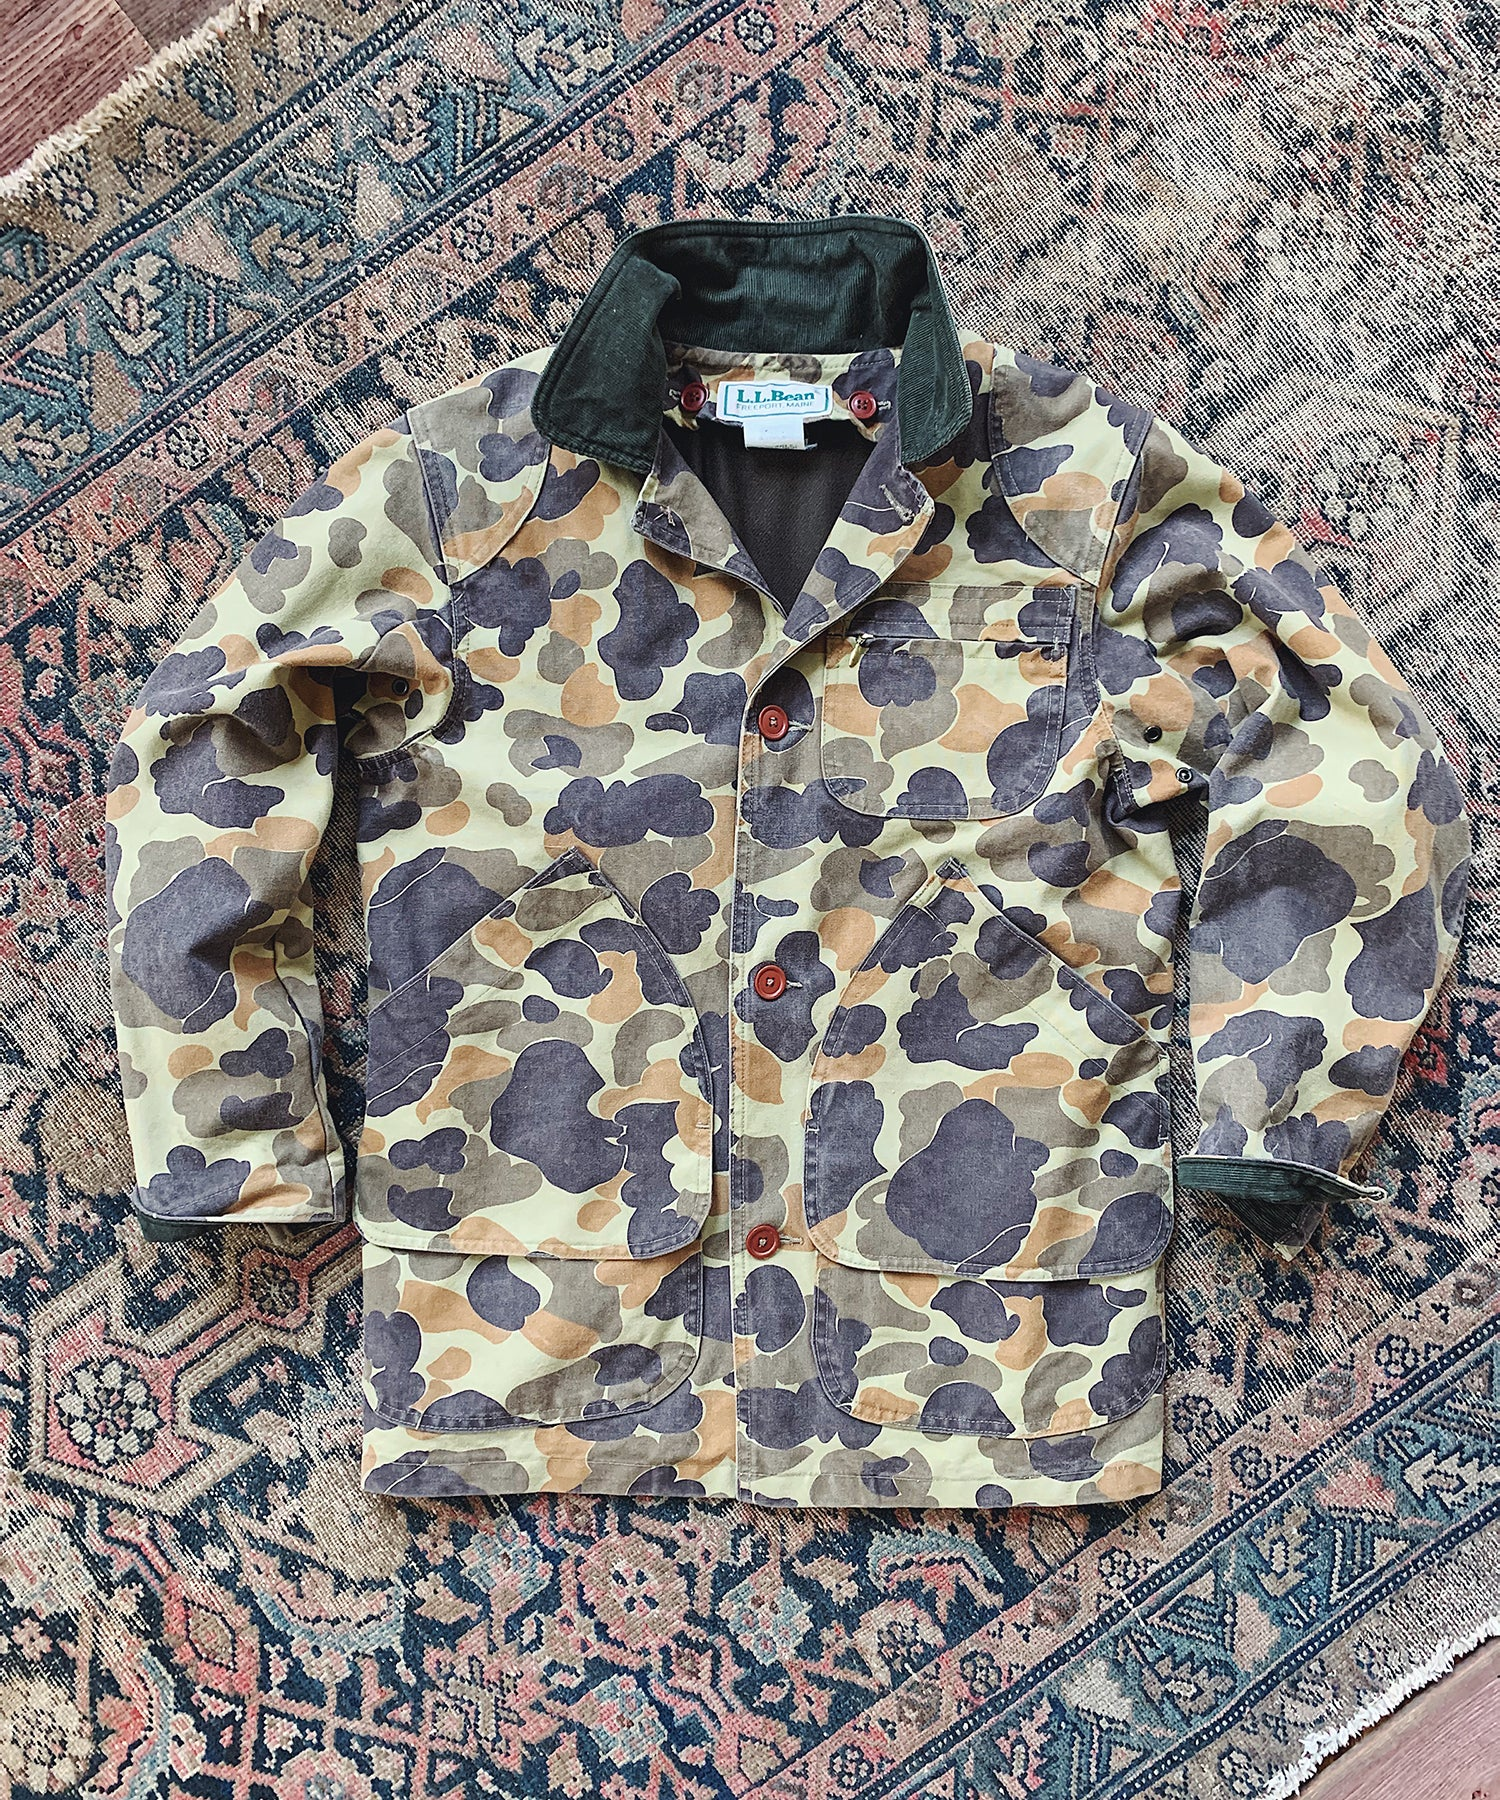 Item #2 - Todd Snyder X Wooden Sleepers 1980's Field Coat in Duck Camo - SOLD OUT